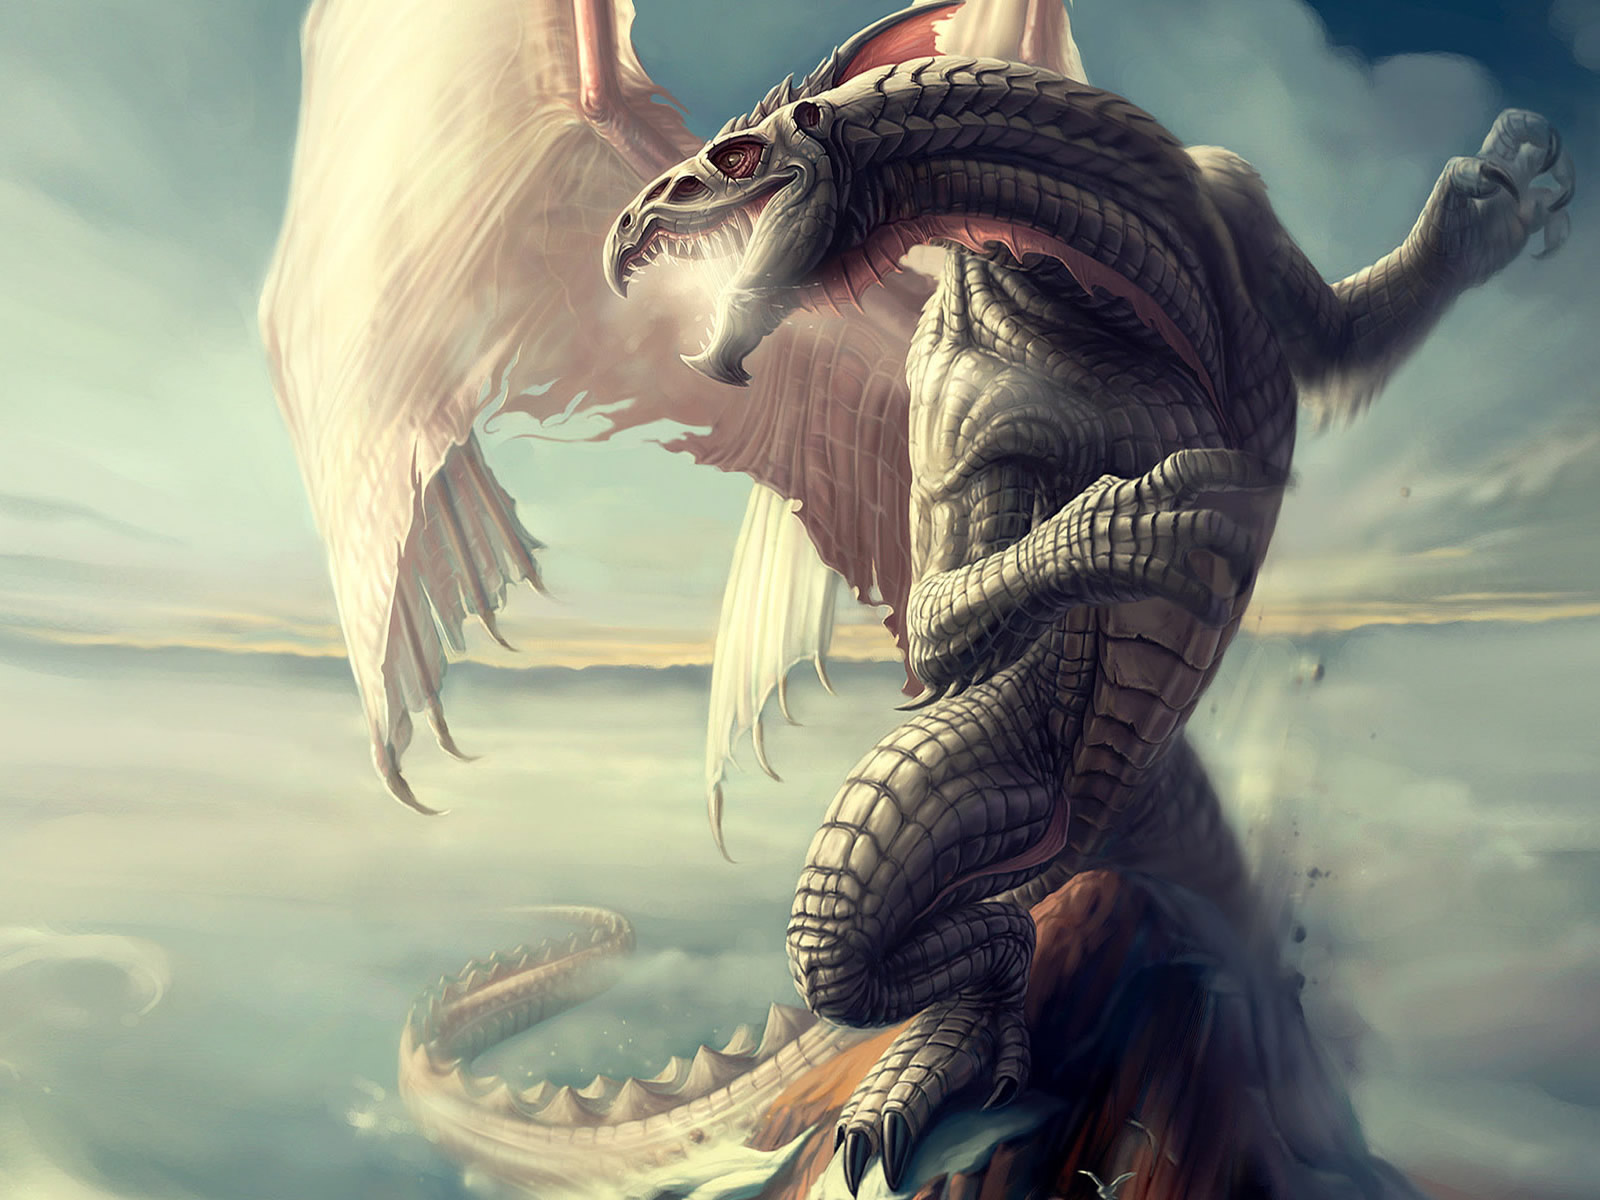 Wallpapers Download Pictures Images and Photos 3d Dragon 1600x1200